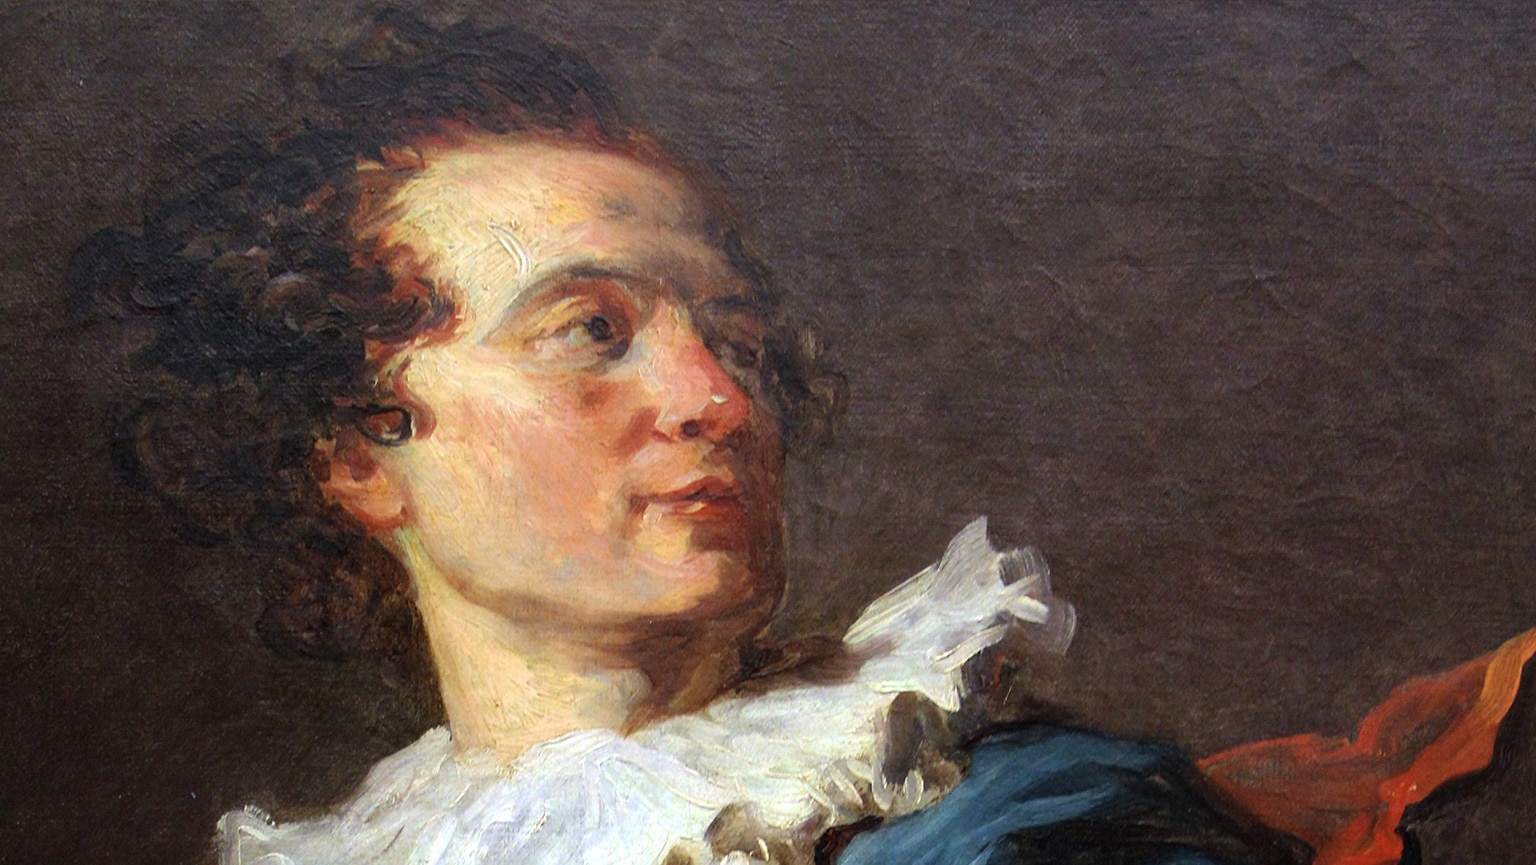 Boucher, Fragonard, and the Rococo in France